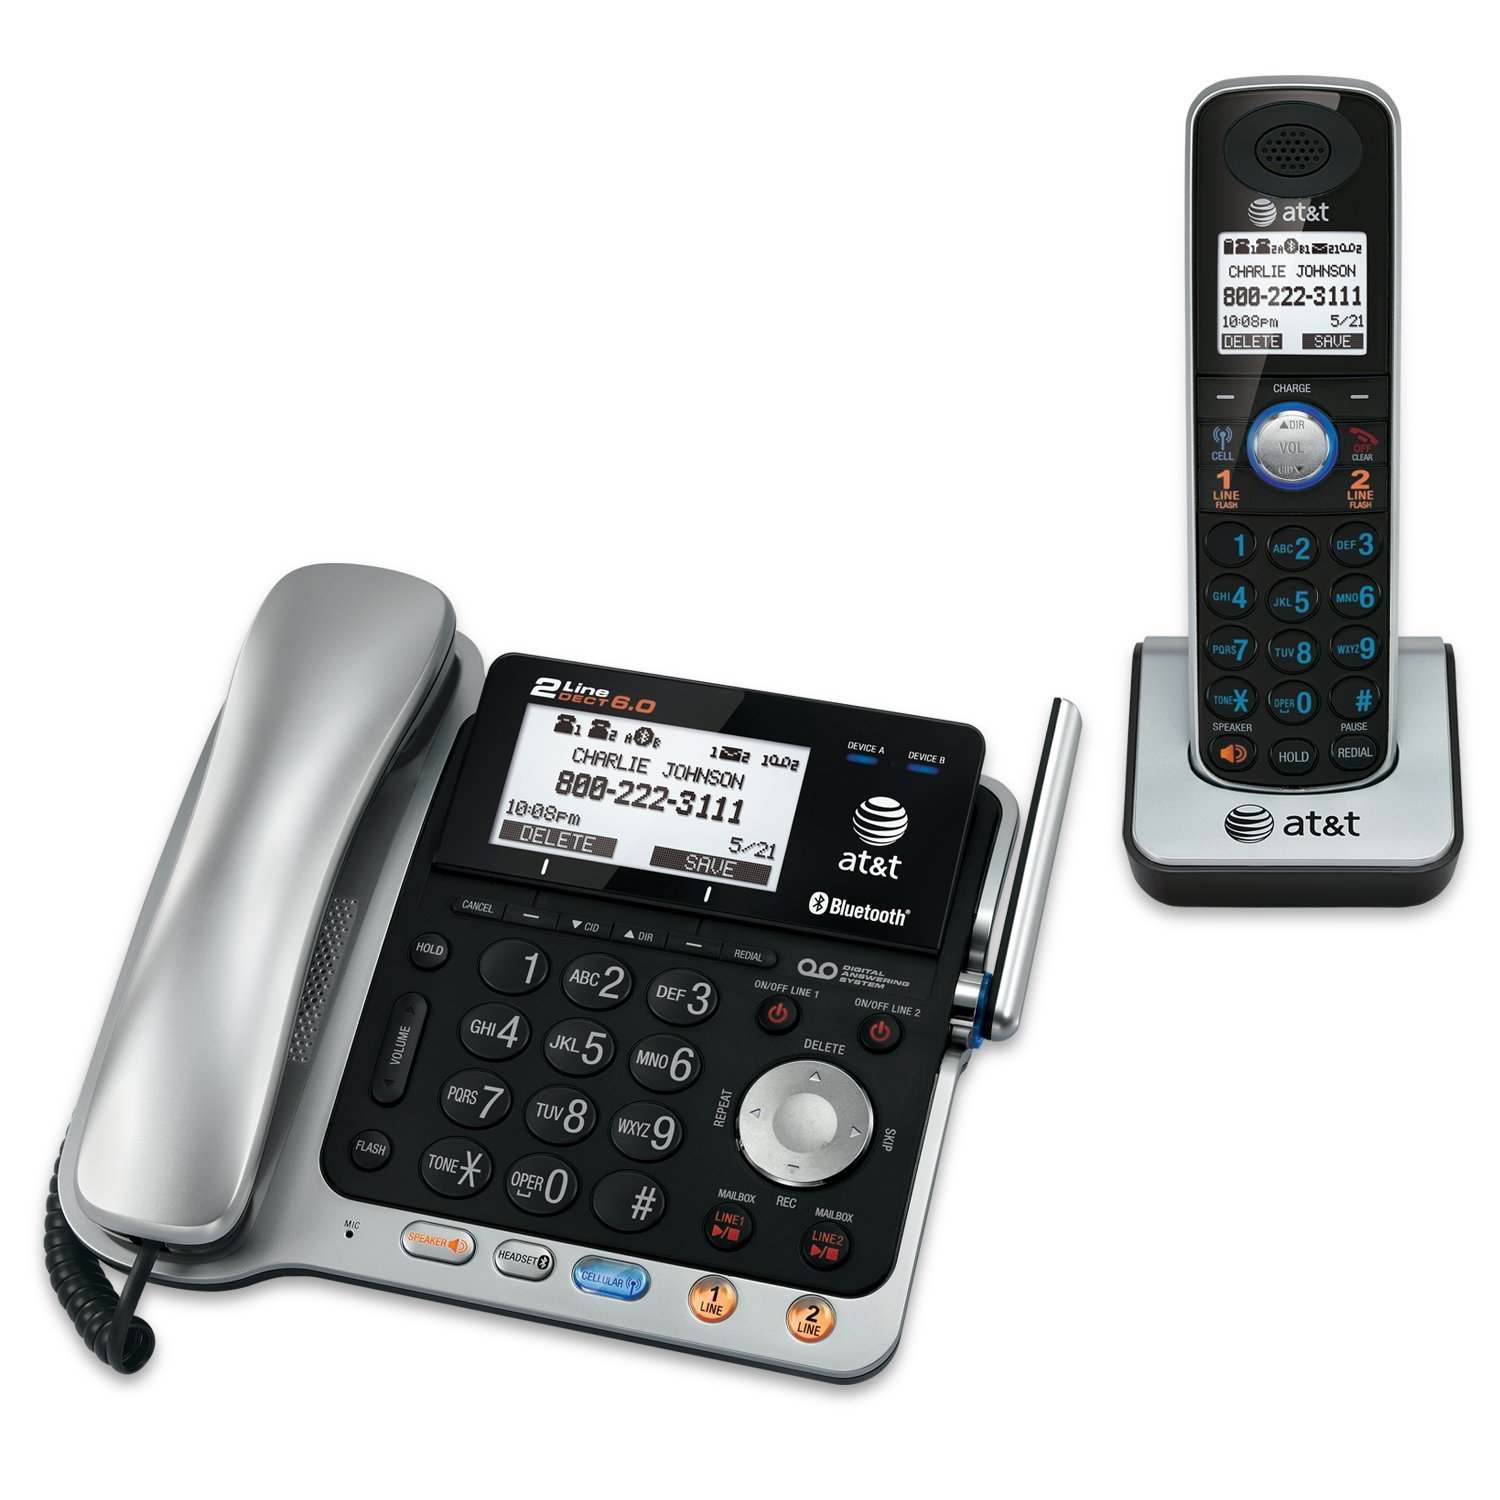 att phone dect 6 0 manual free owners manual u2022 rh wordworksbysea com panasonic landline phone manual panasonic home phone dect 6.0 manual